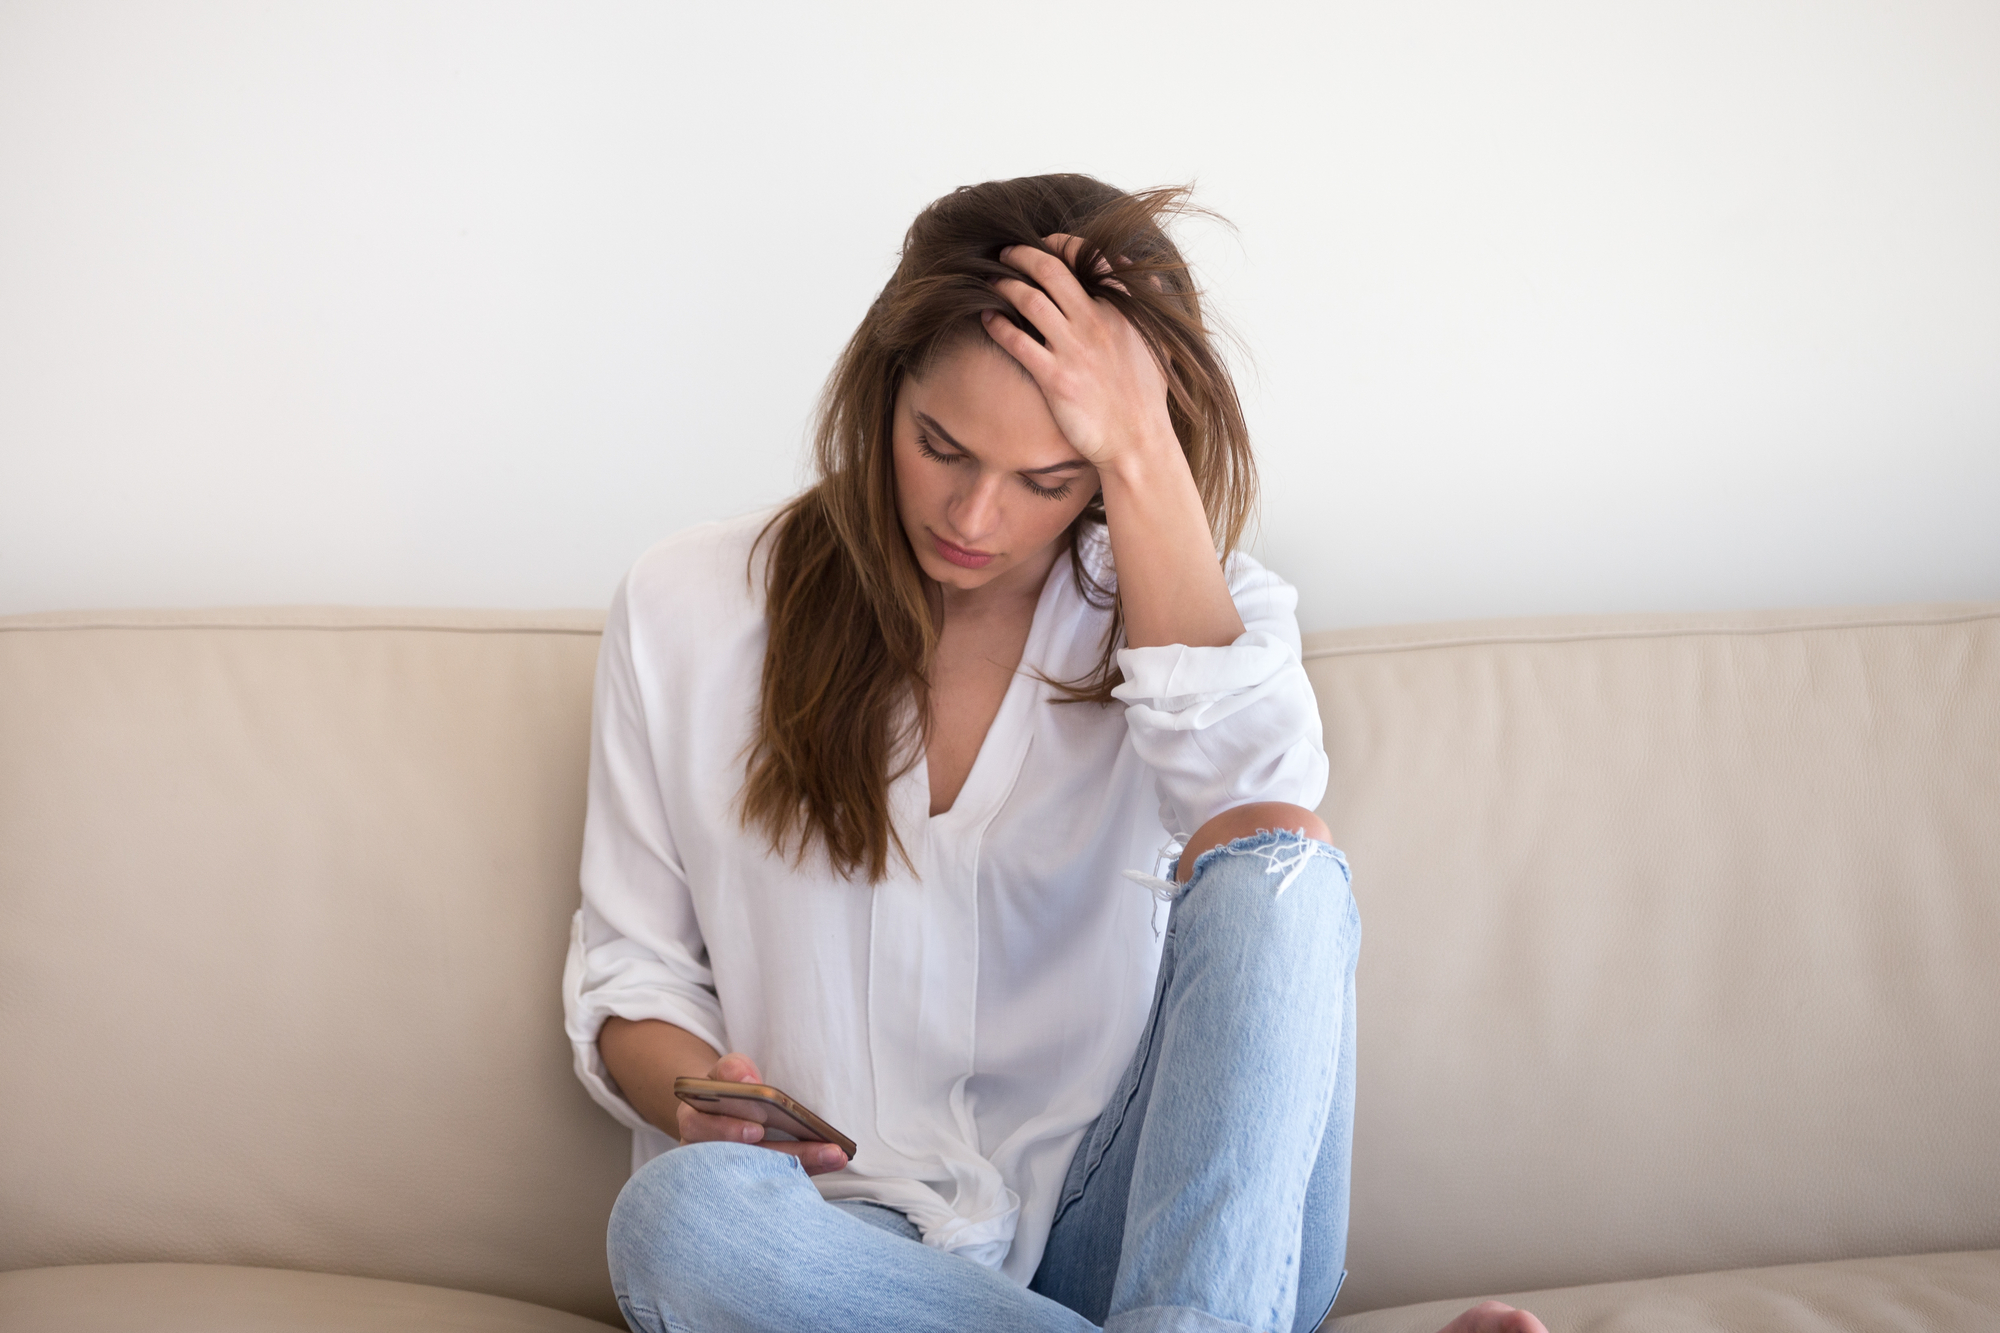 Woman sits on her sofa and  looks sadly down at her cell phone